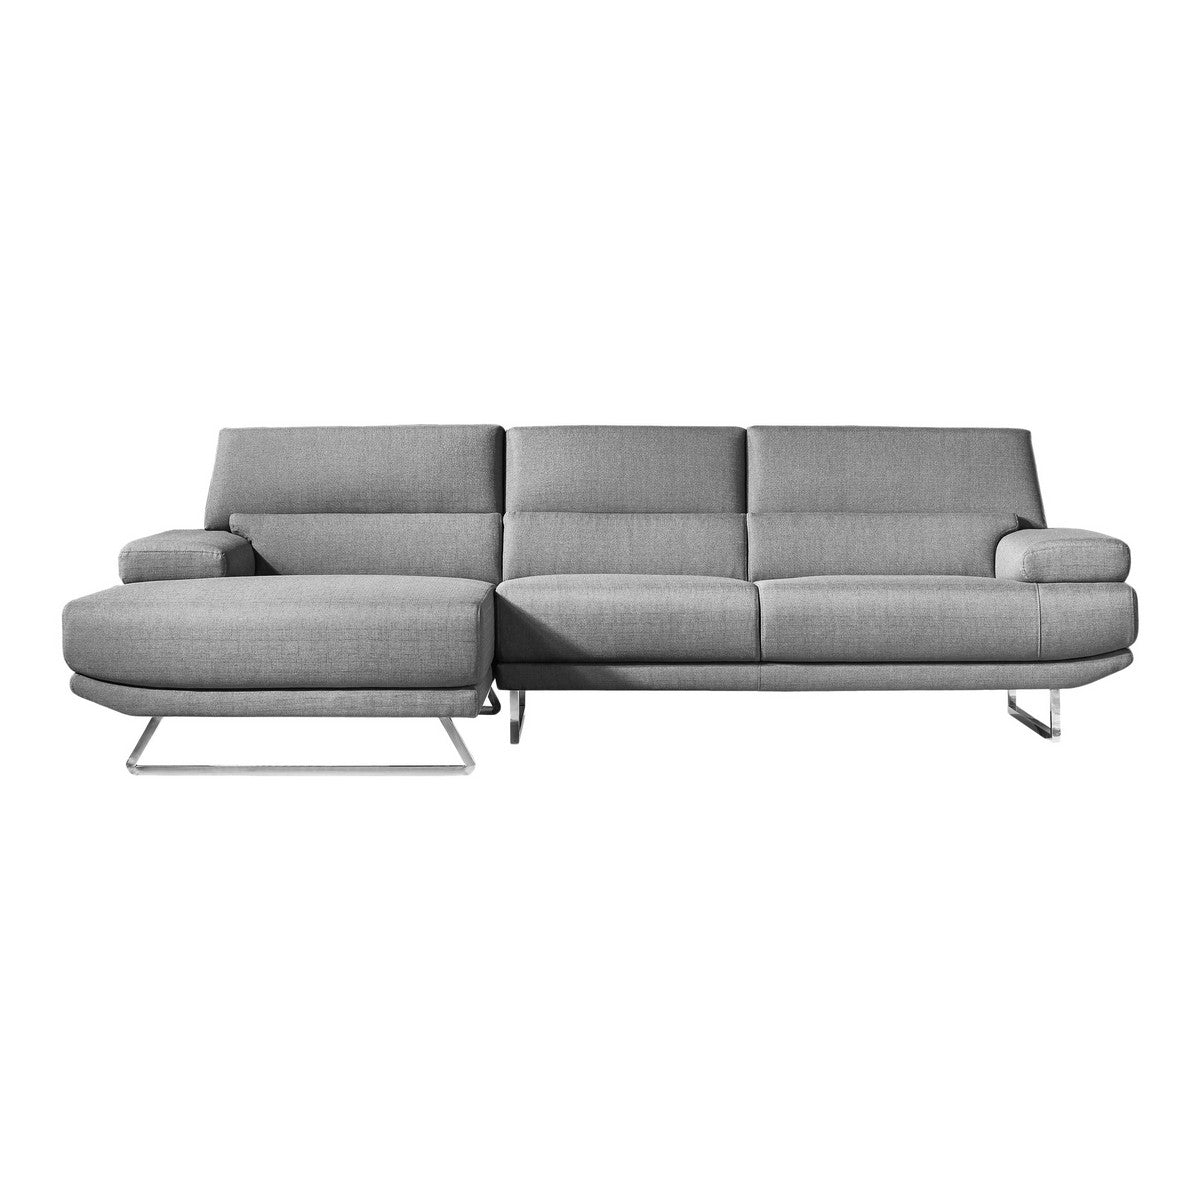 Moe's Home Collection Jenn Sectional Grey Left - MT-1001-25-L - Moe's Home Collection - sofa sectionals - Minimal And Modern - 1